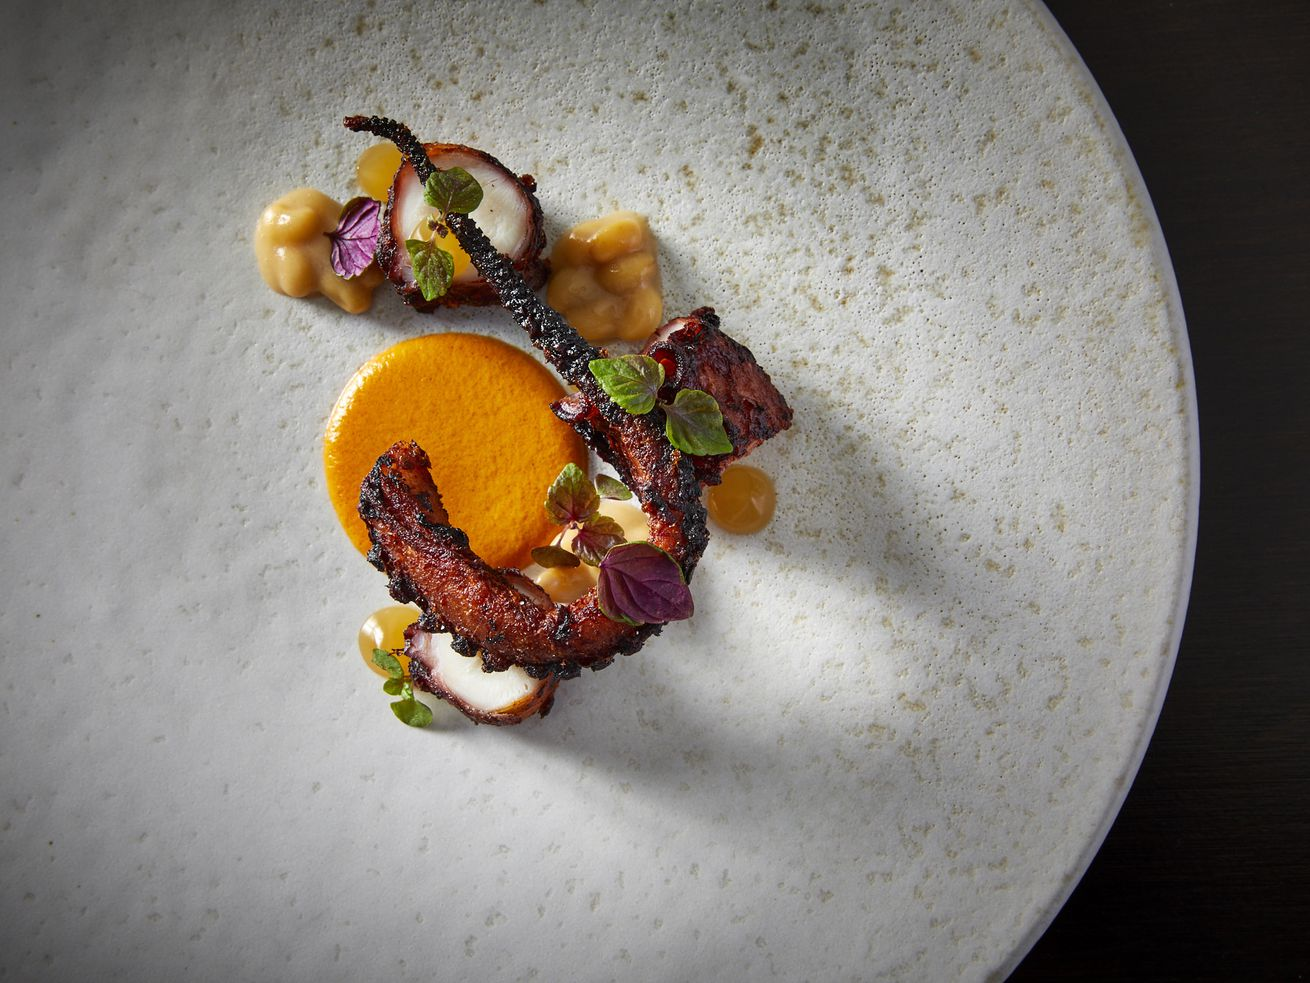 Acadia was the best meal of 2018 for two of our experts